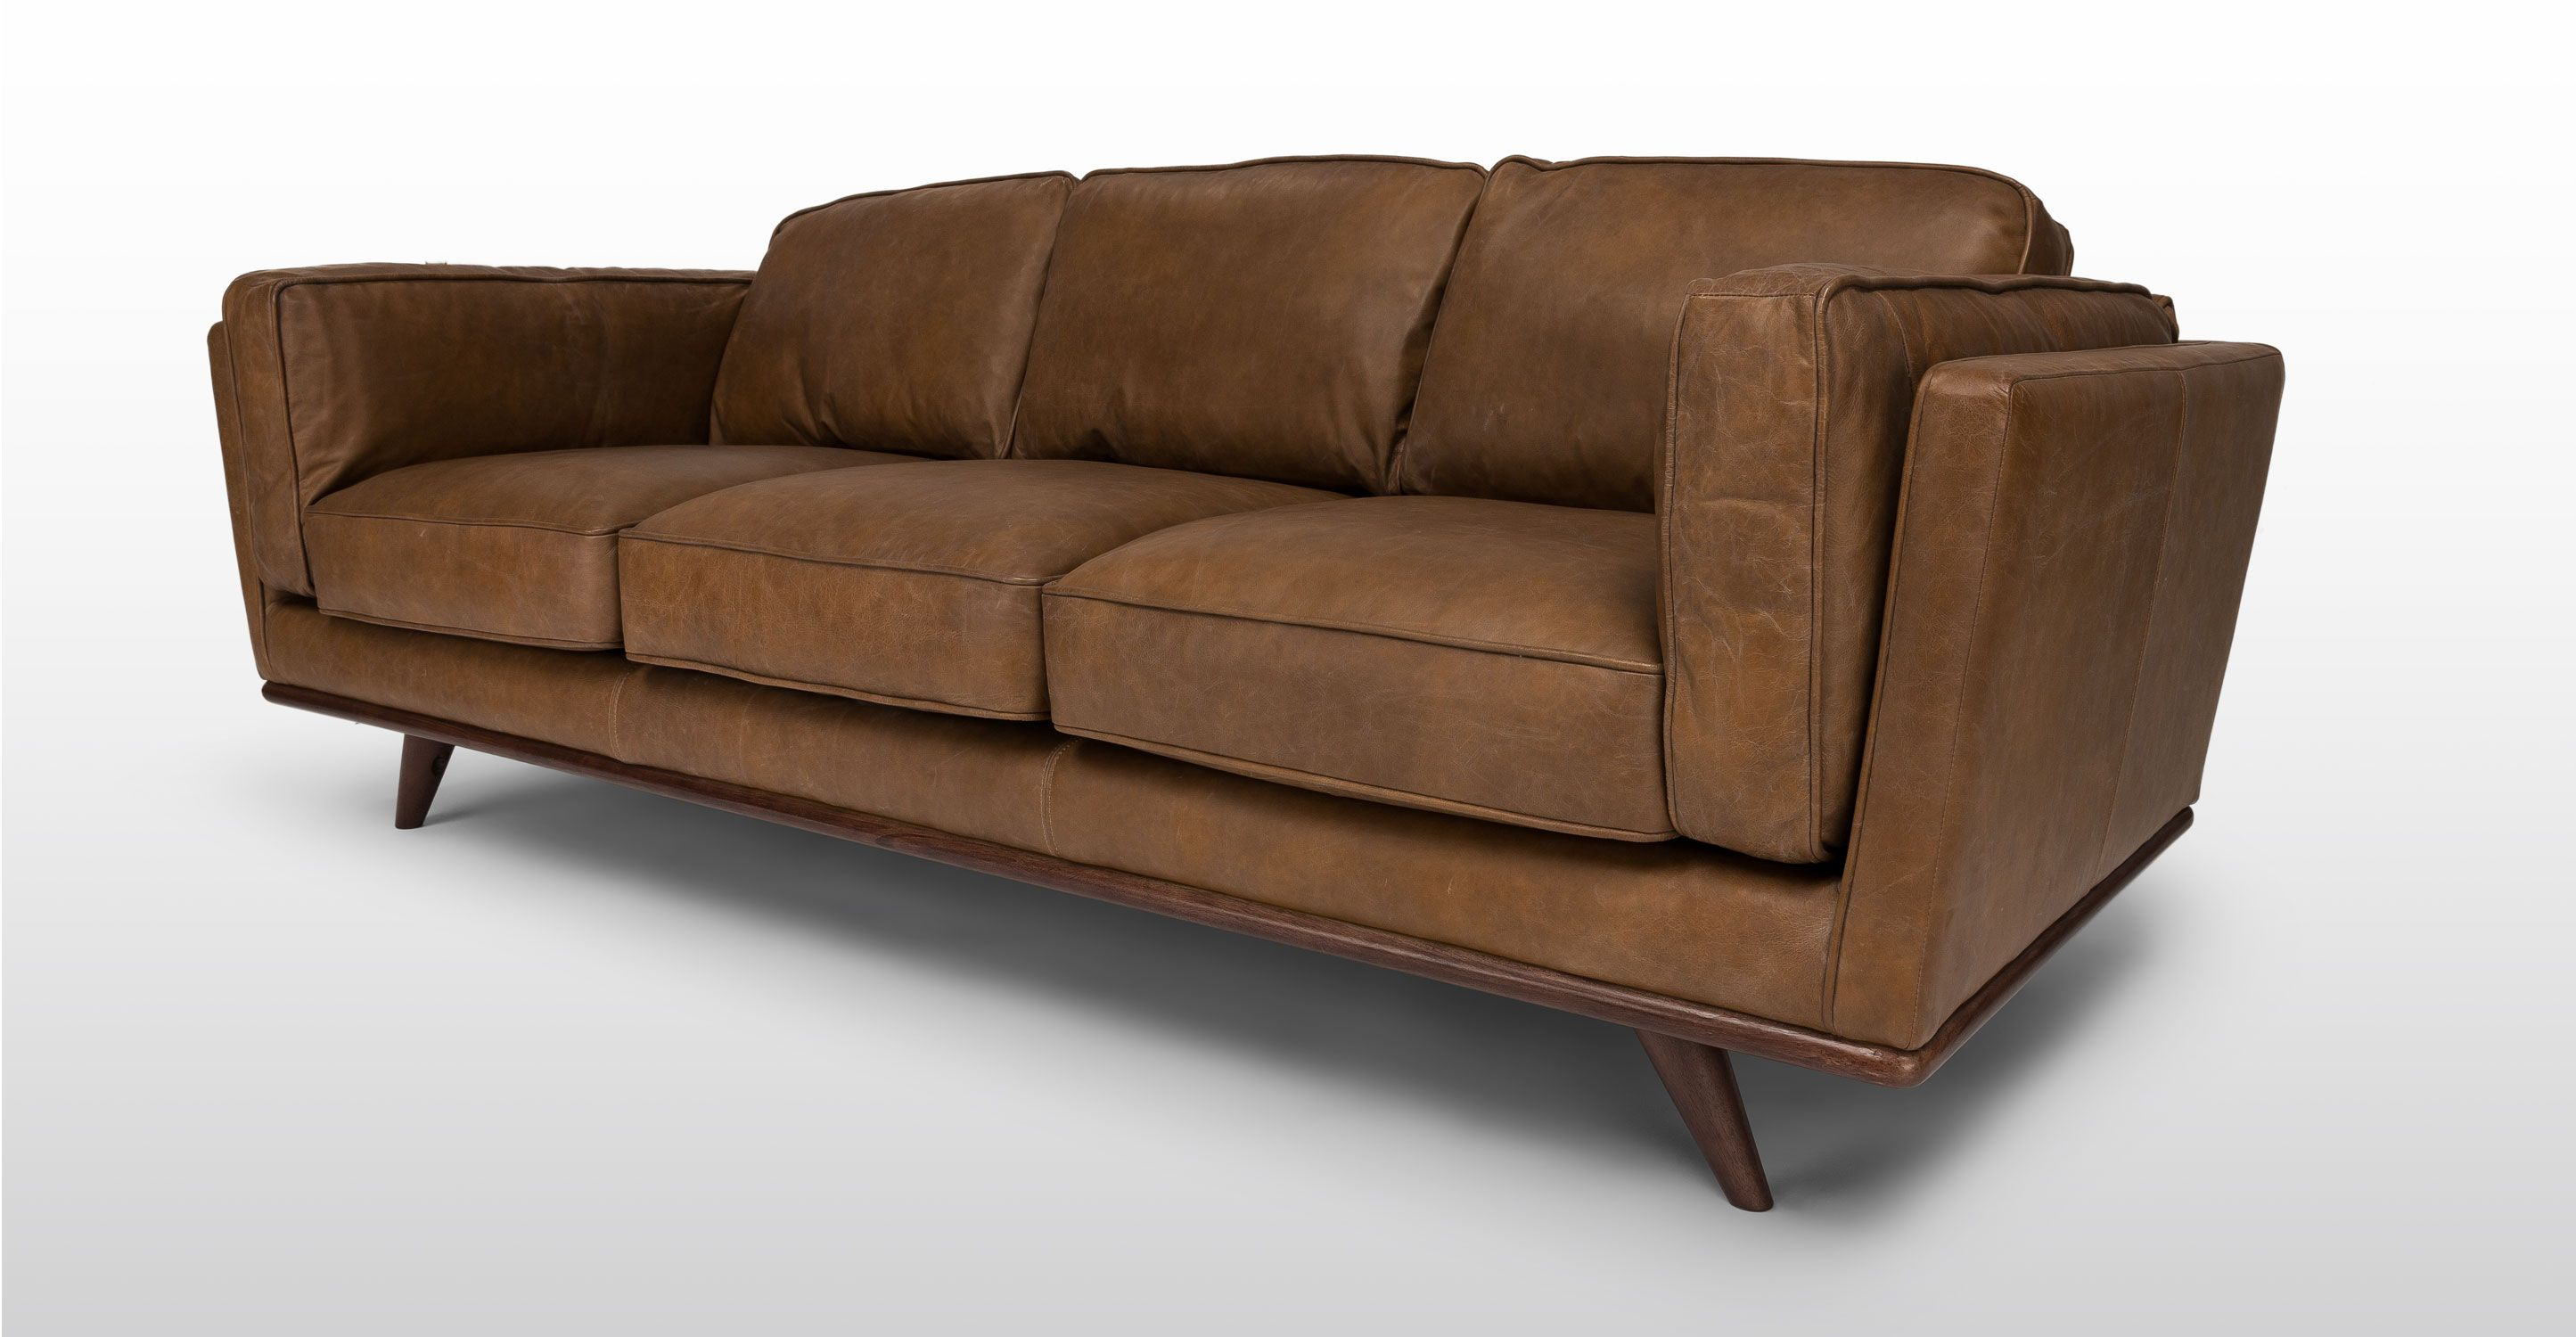 tan leather sofa cheap sleeper sets brown 3 seater article timber mid